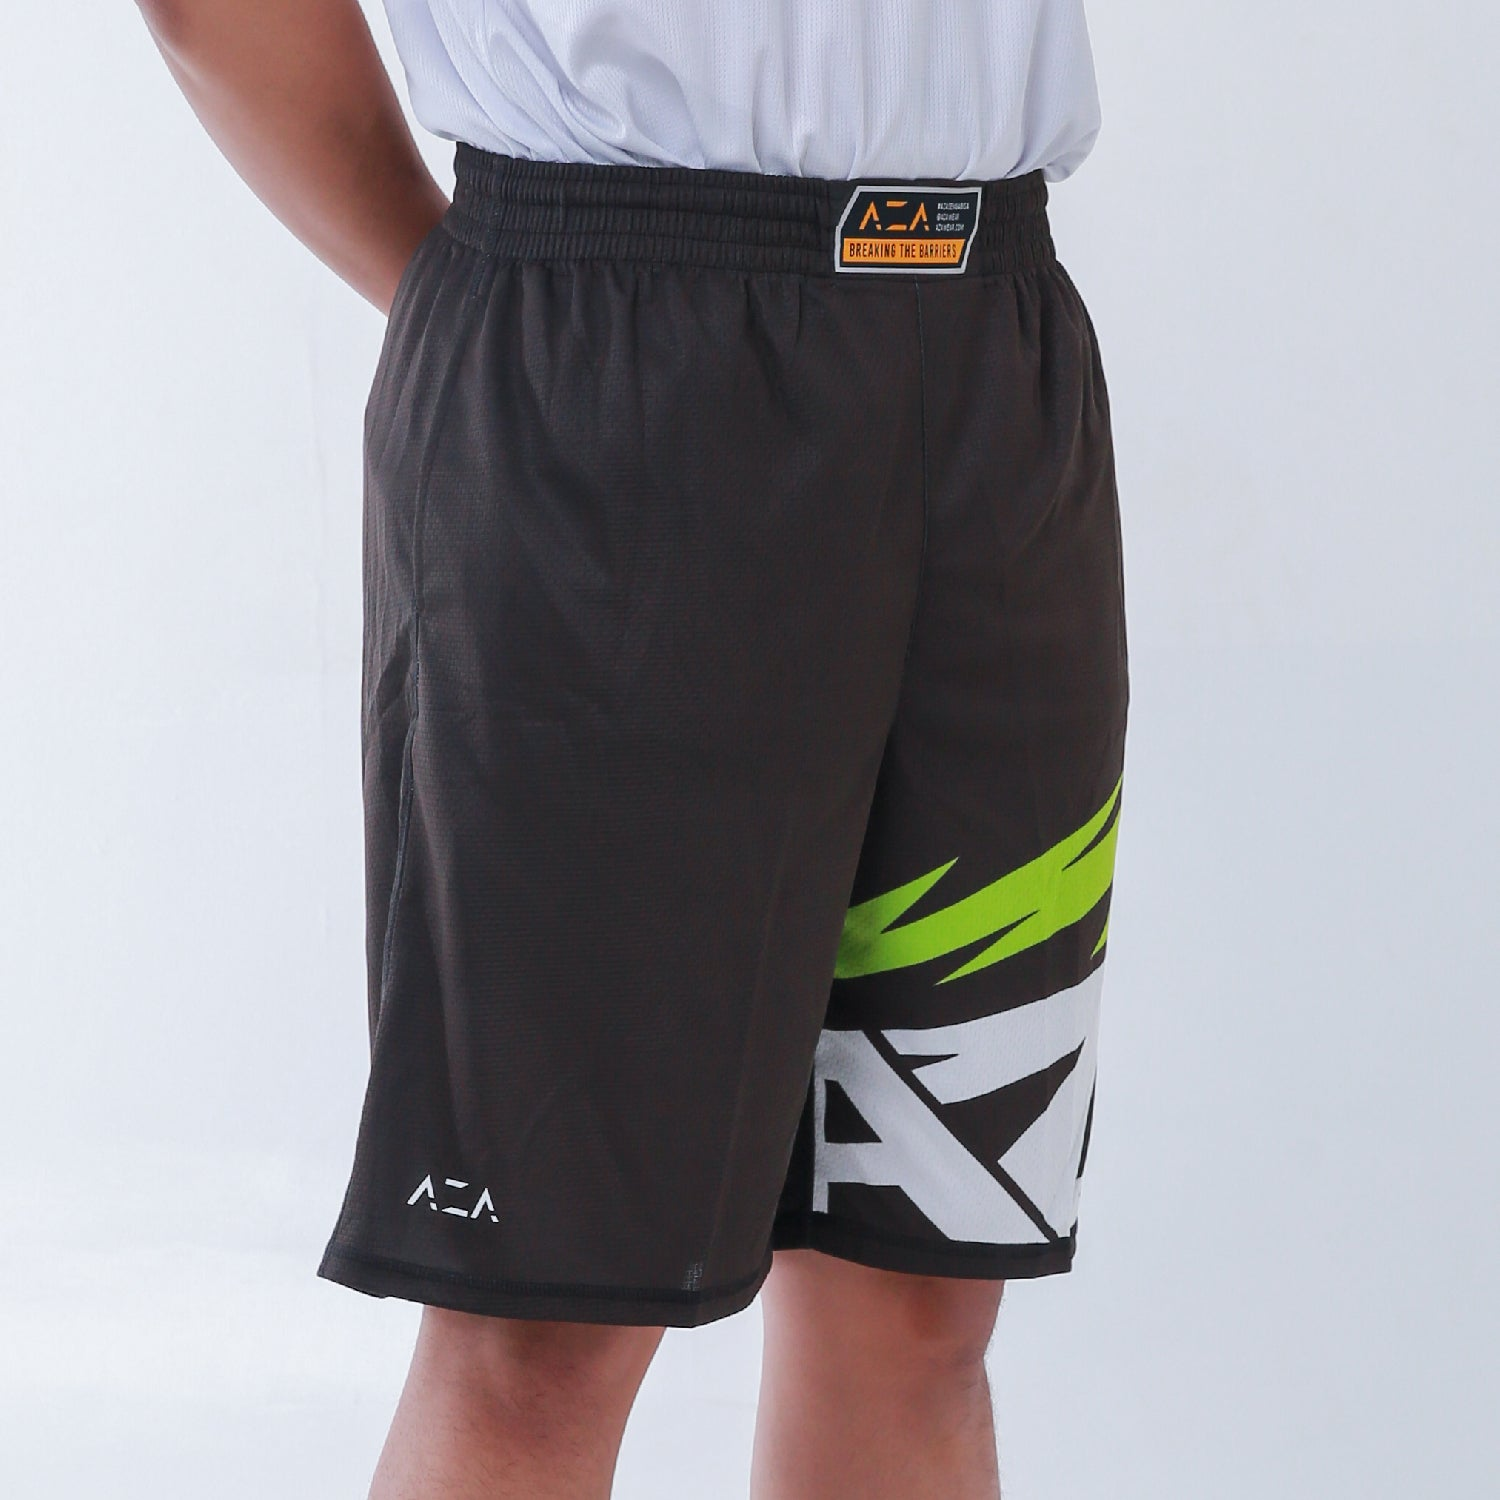 AZA Manga Strike Short - Black/Green